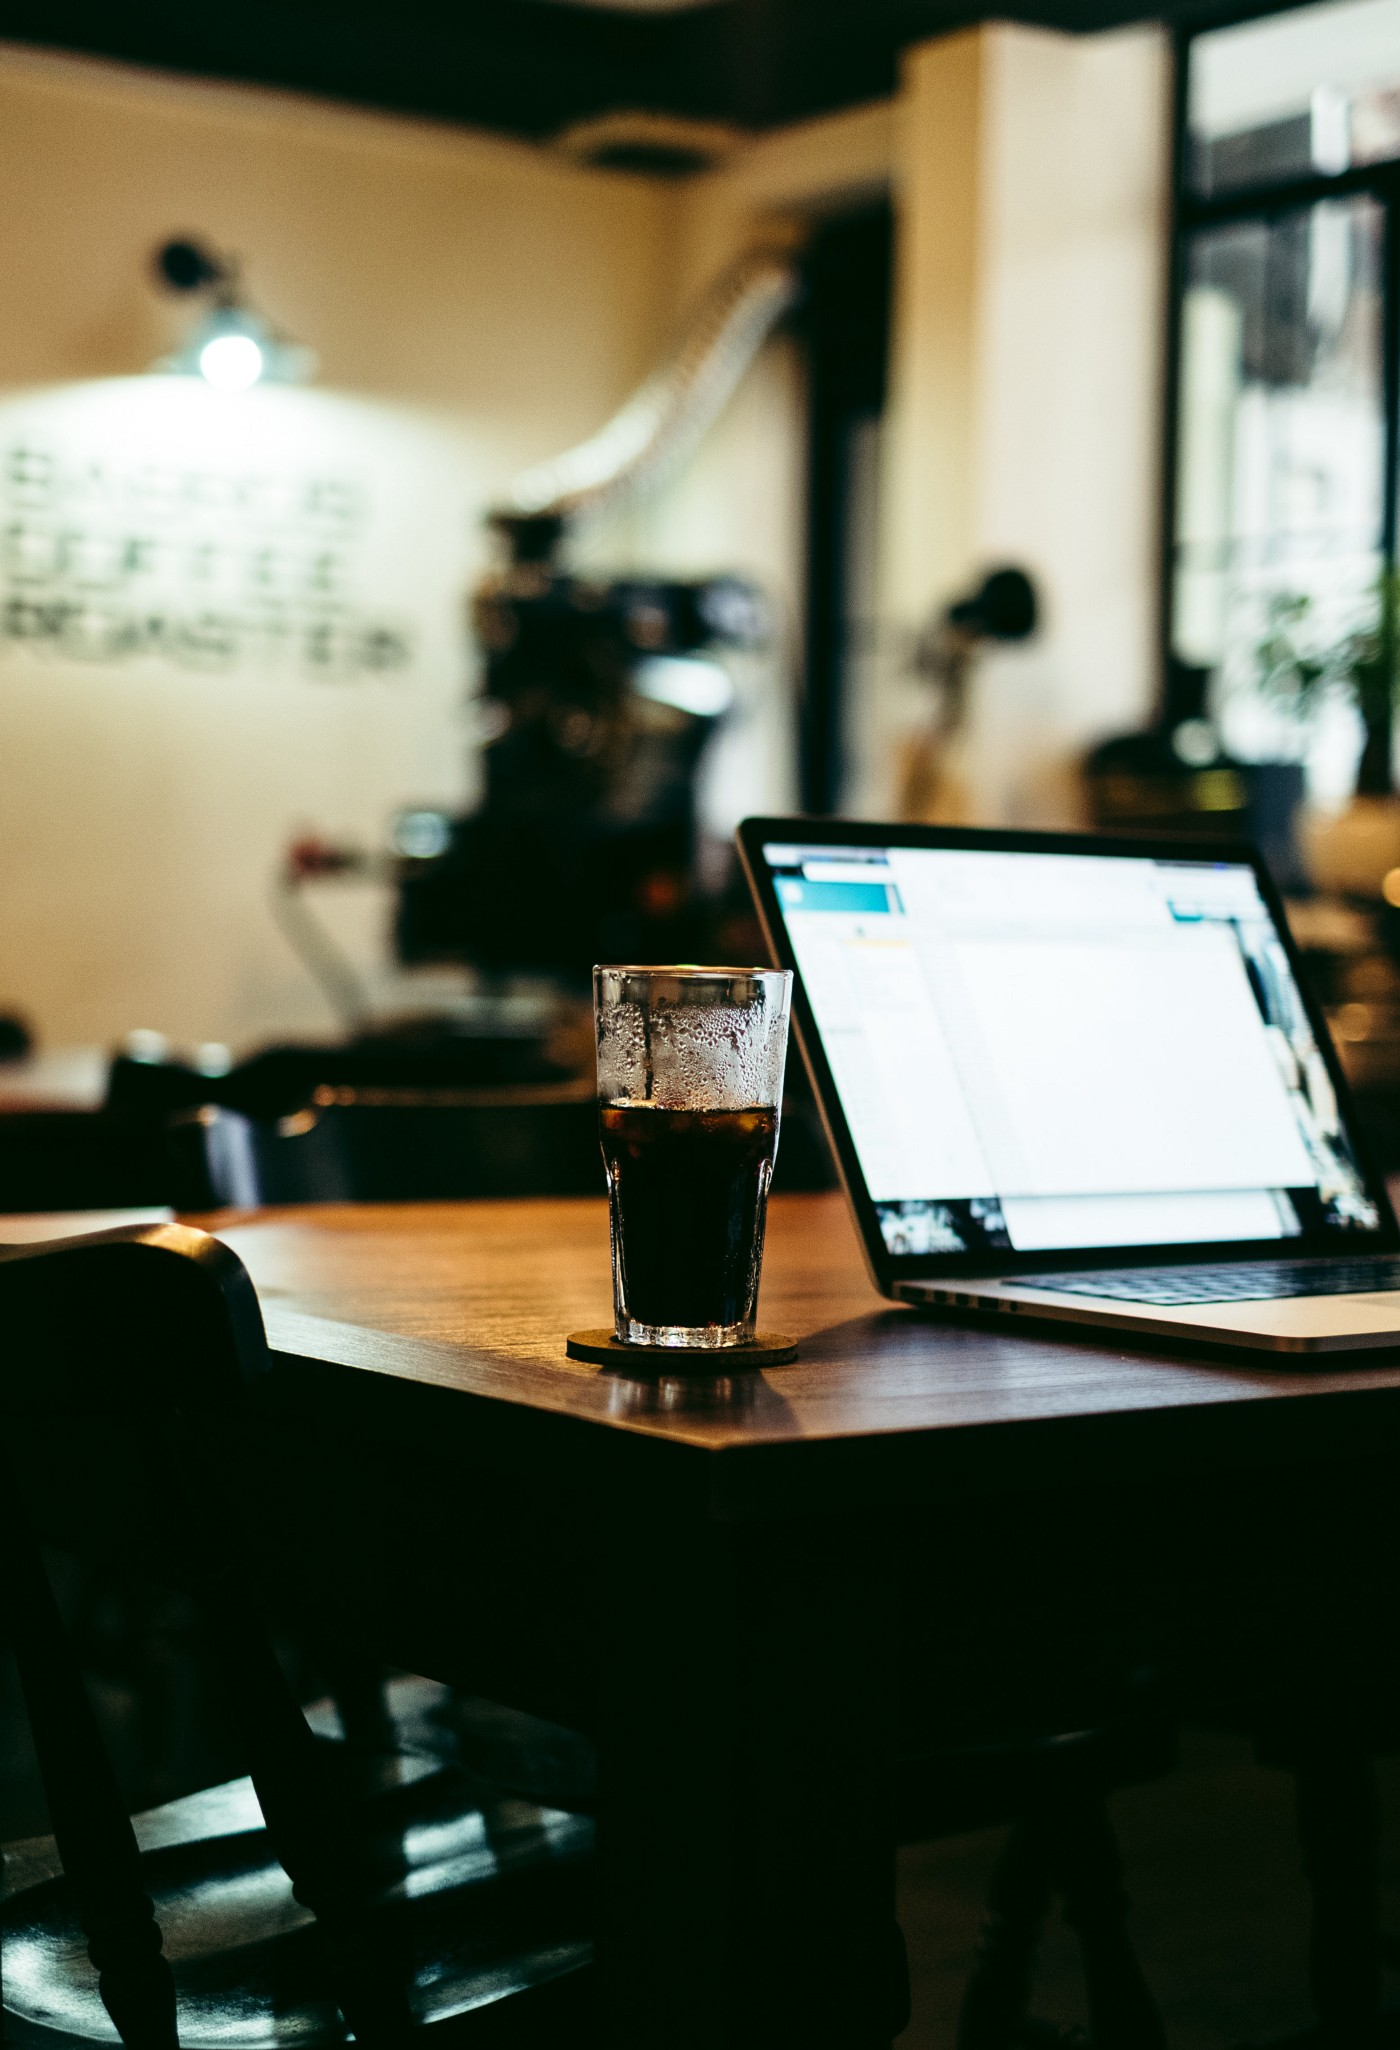 A laptop and a hot beverage on a table